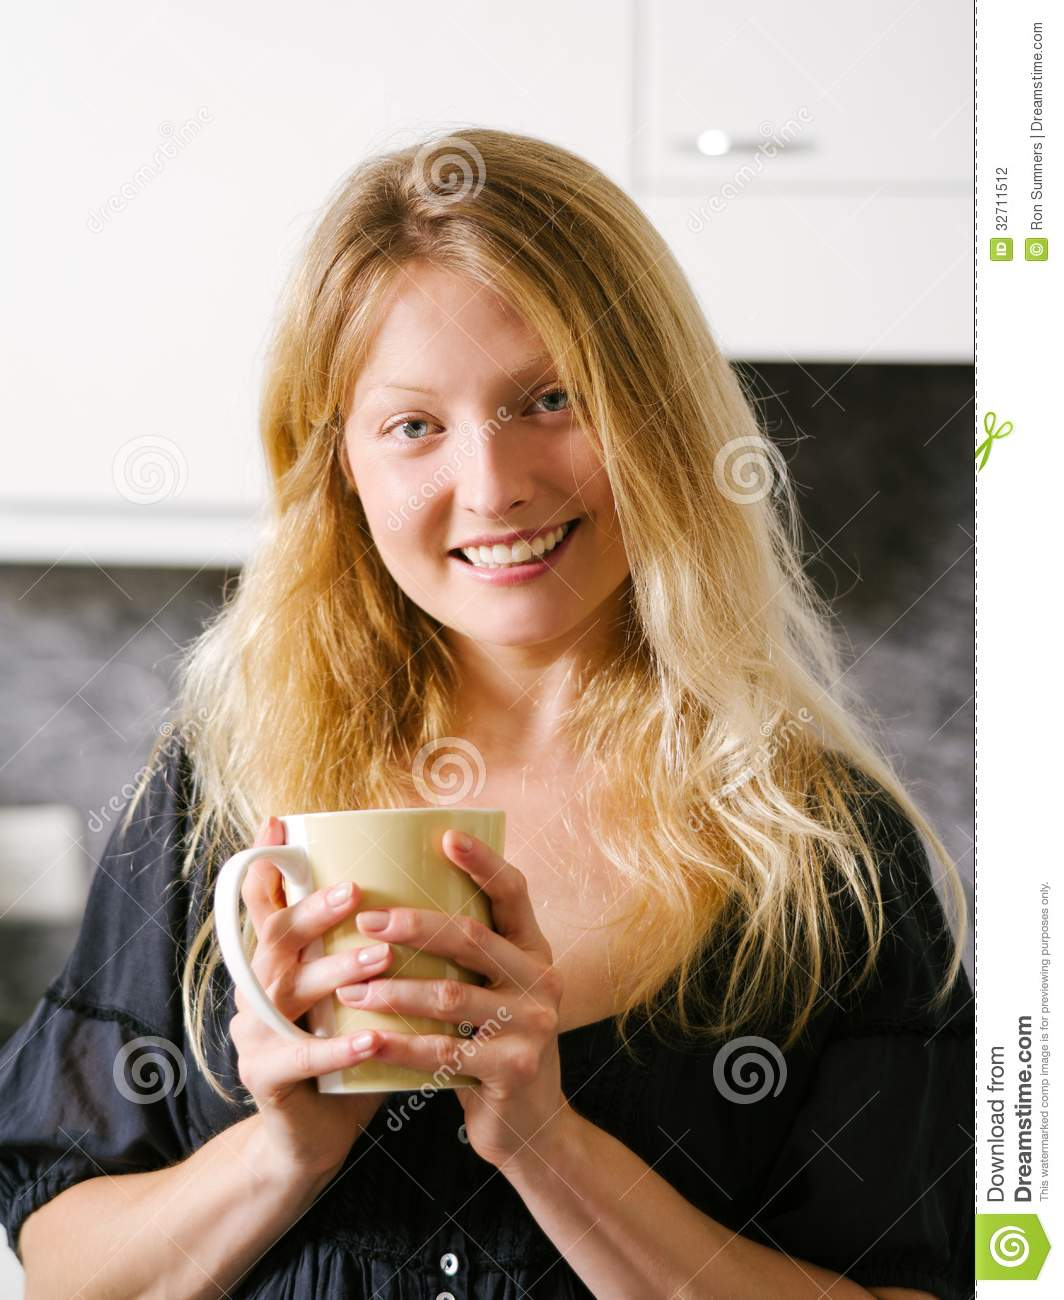 Beautiful blond holding a large coffee